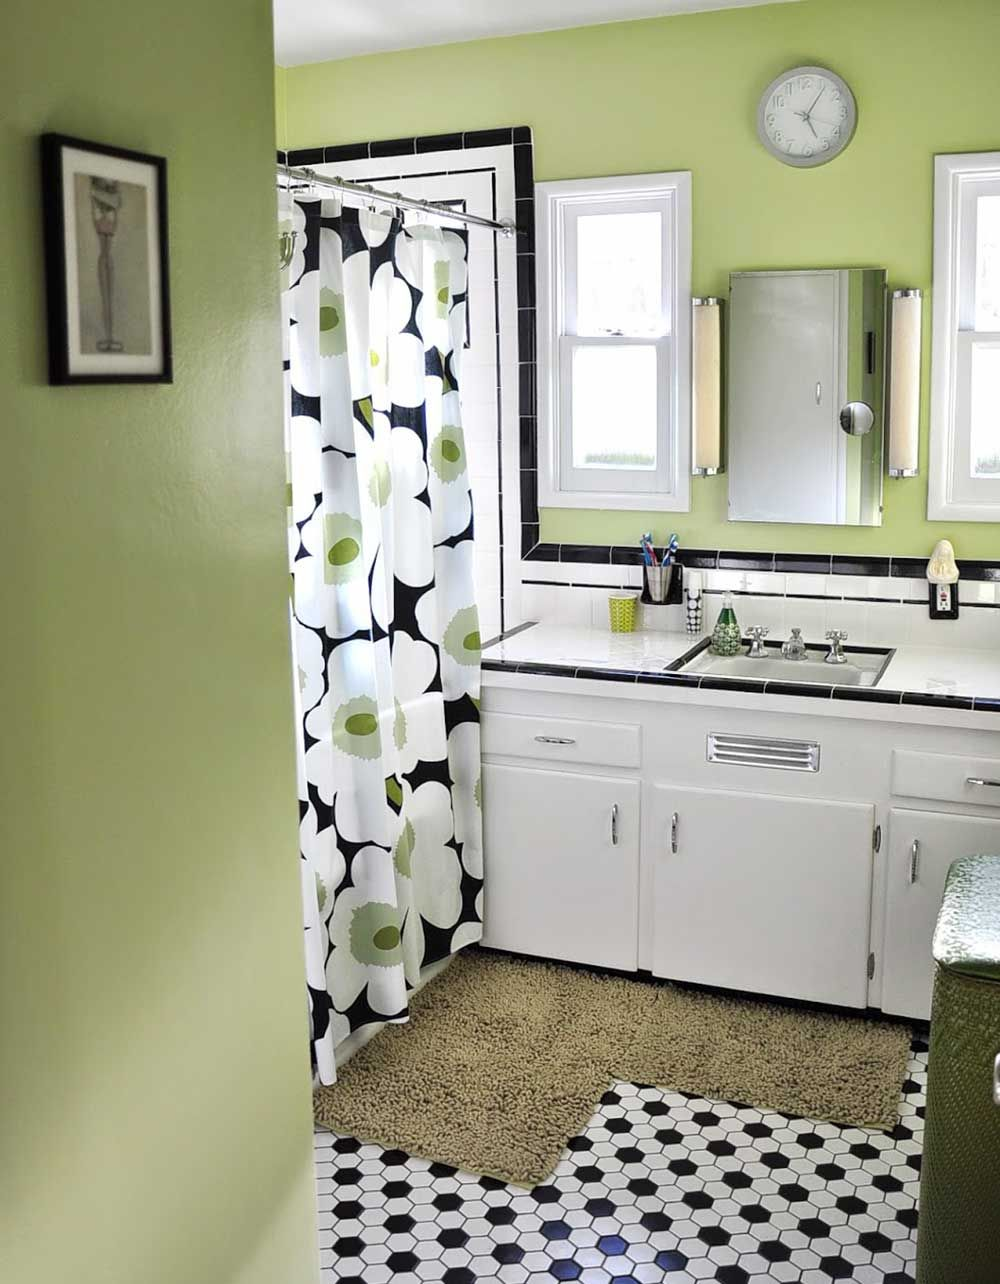 Black and white tile bathrooms - done 6 different ways | Pinterest ...